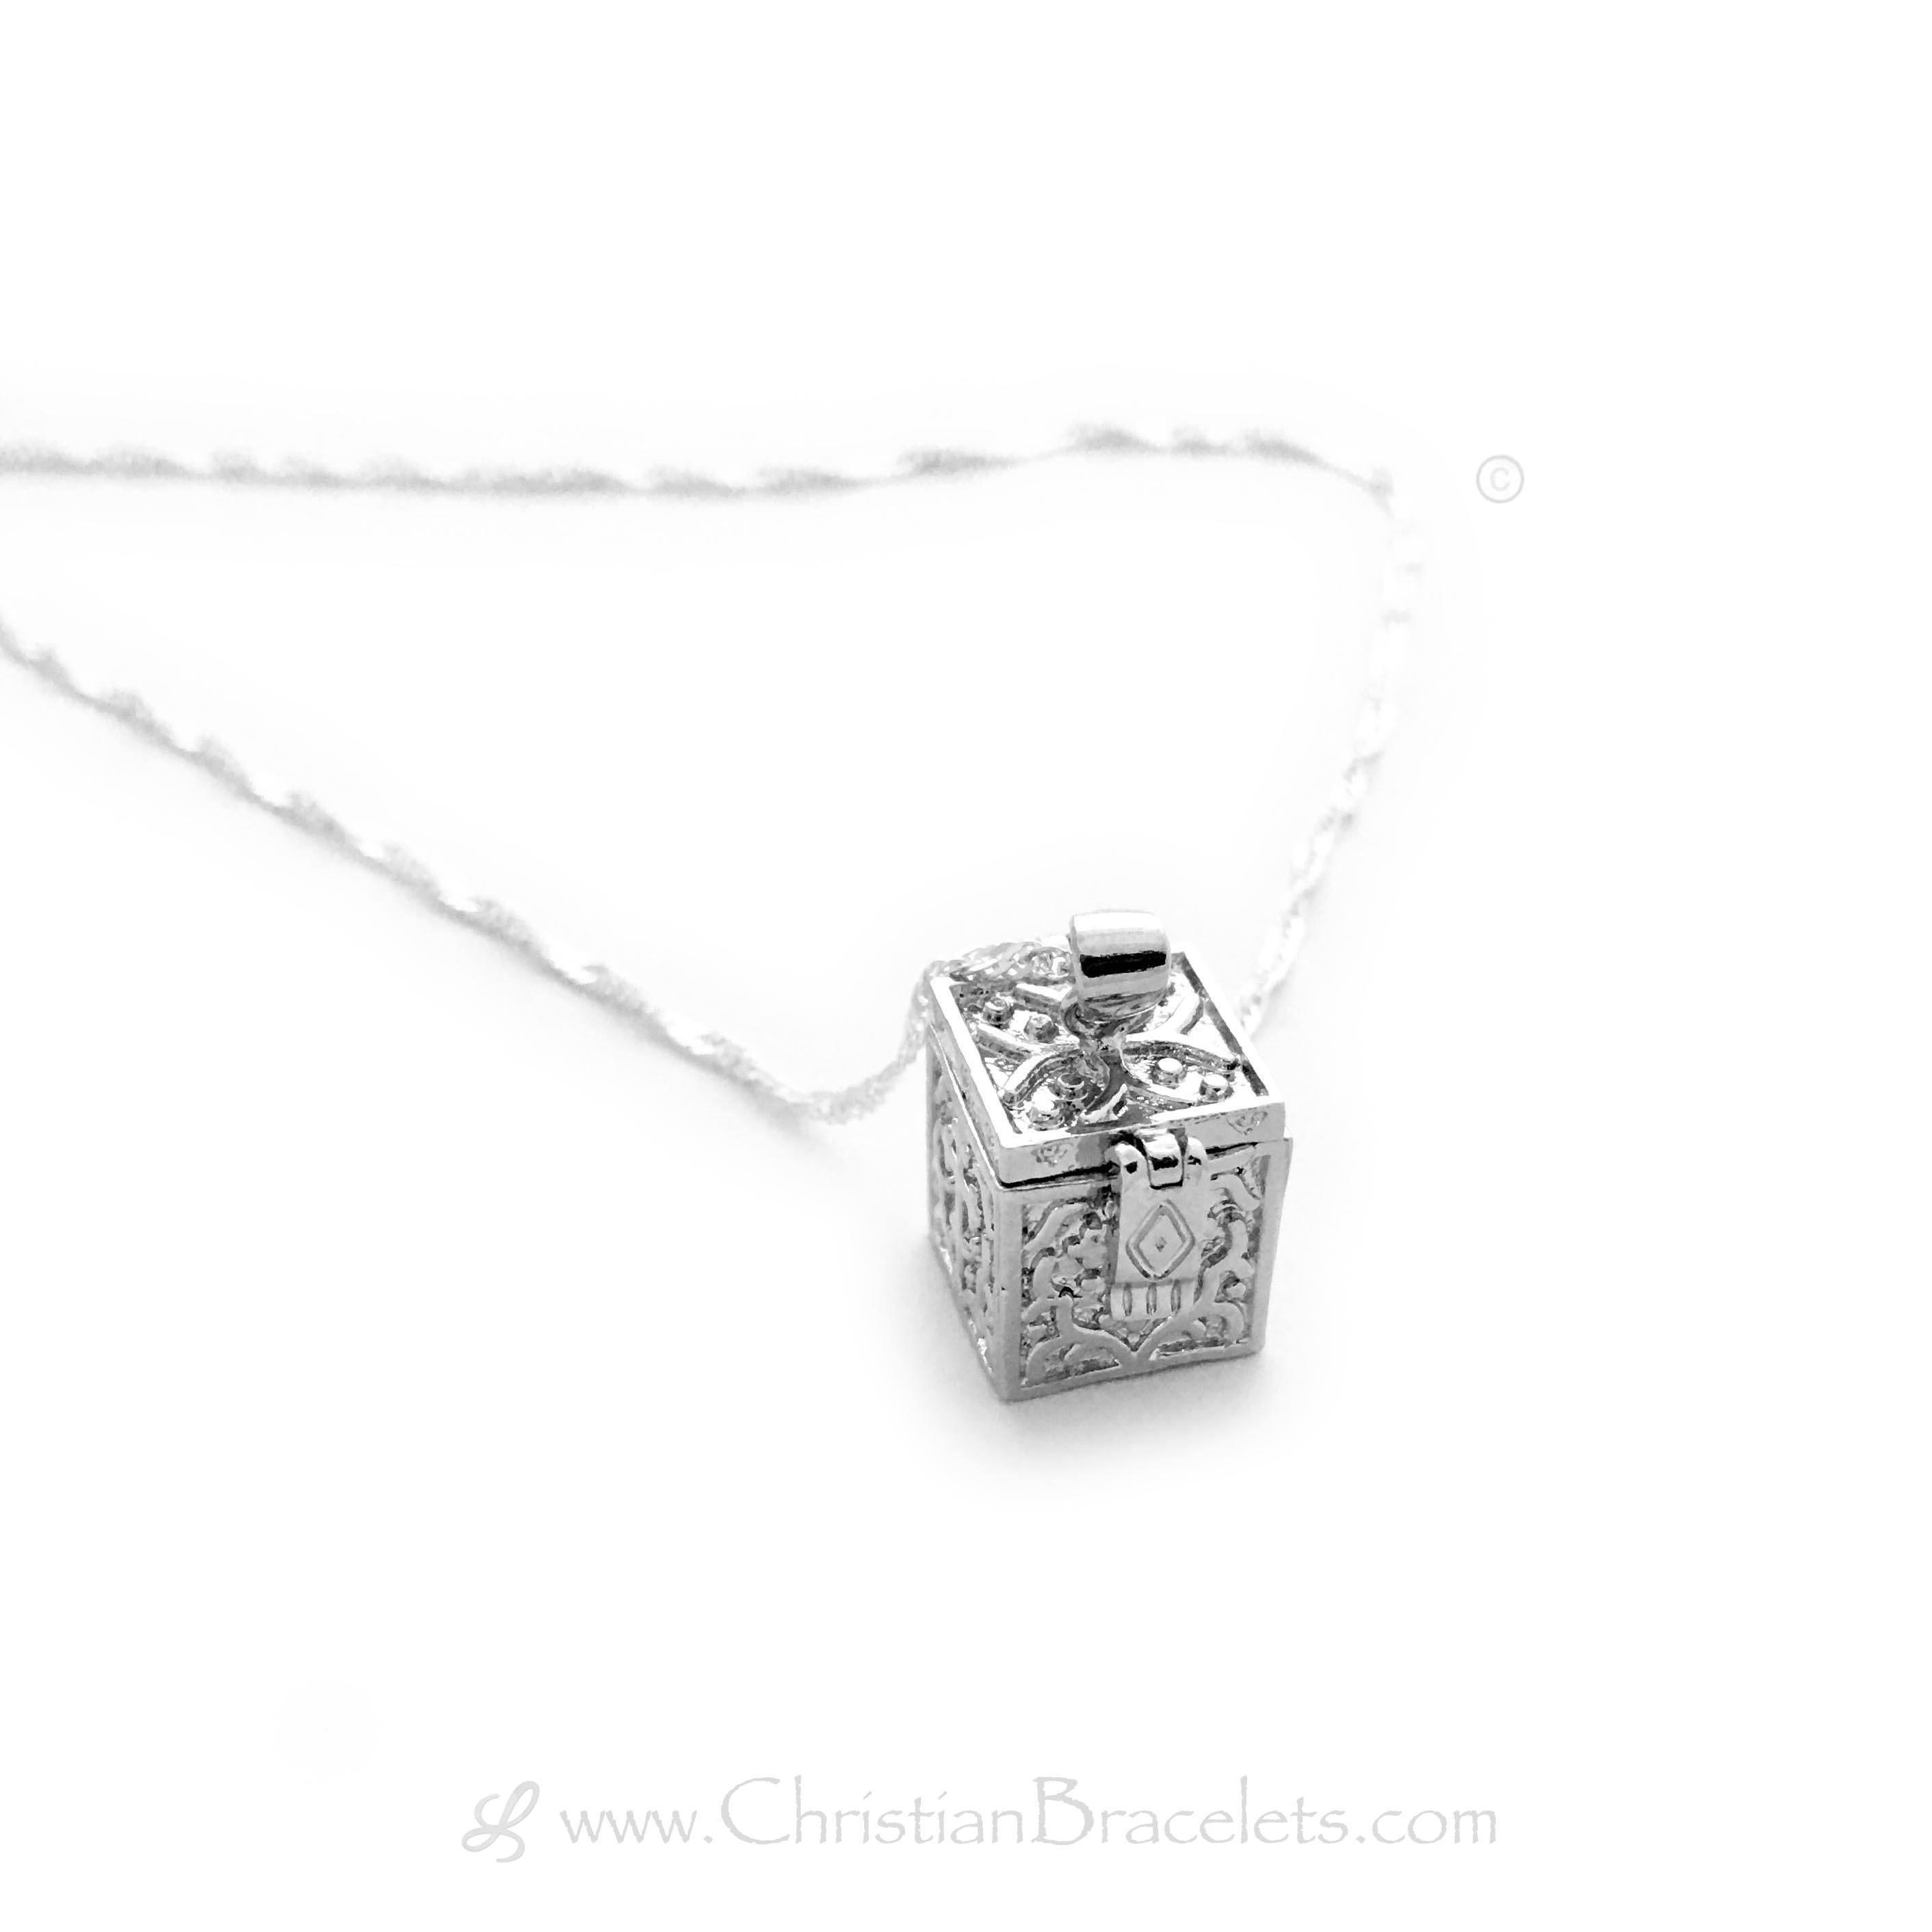 Silver Prayer Box Necklace on a silver chain